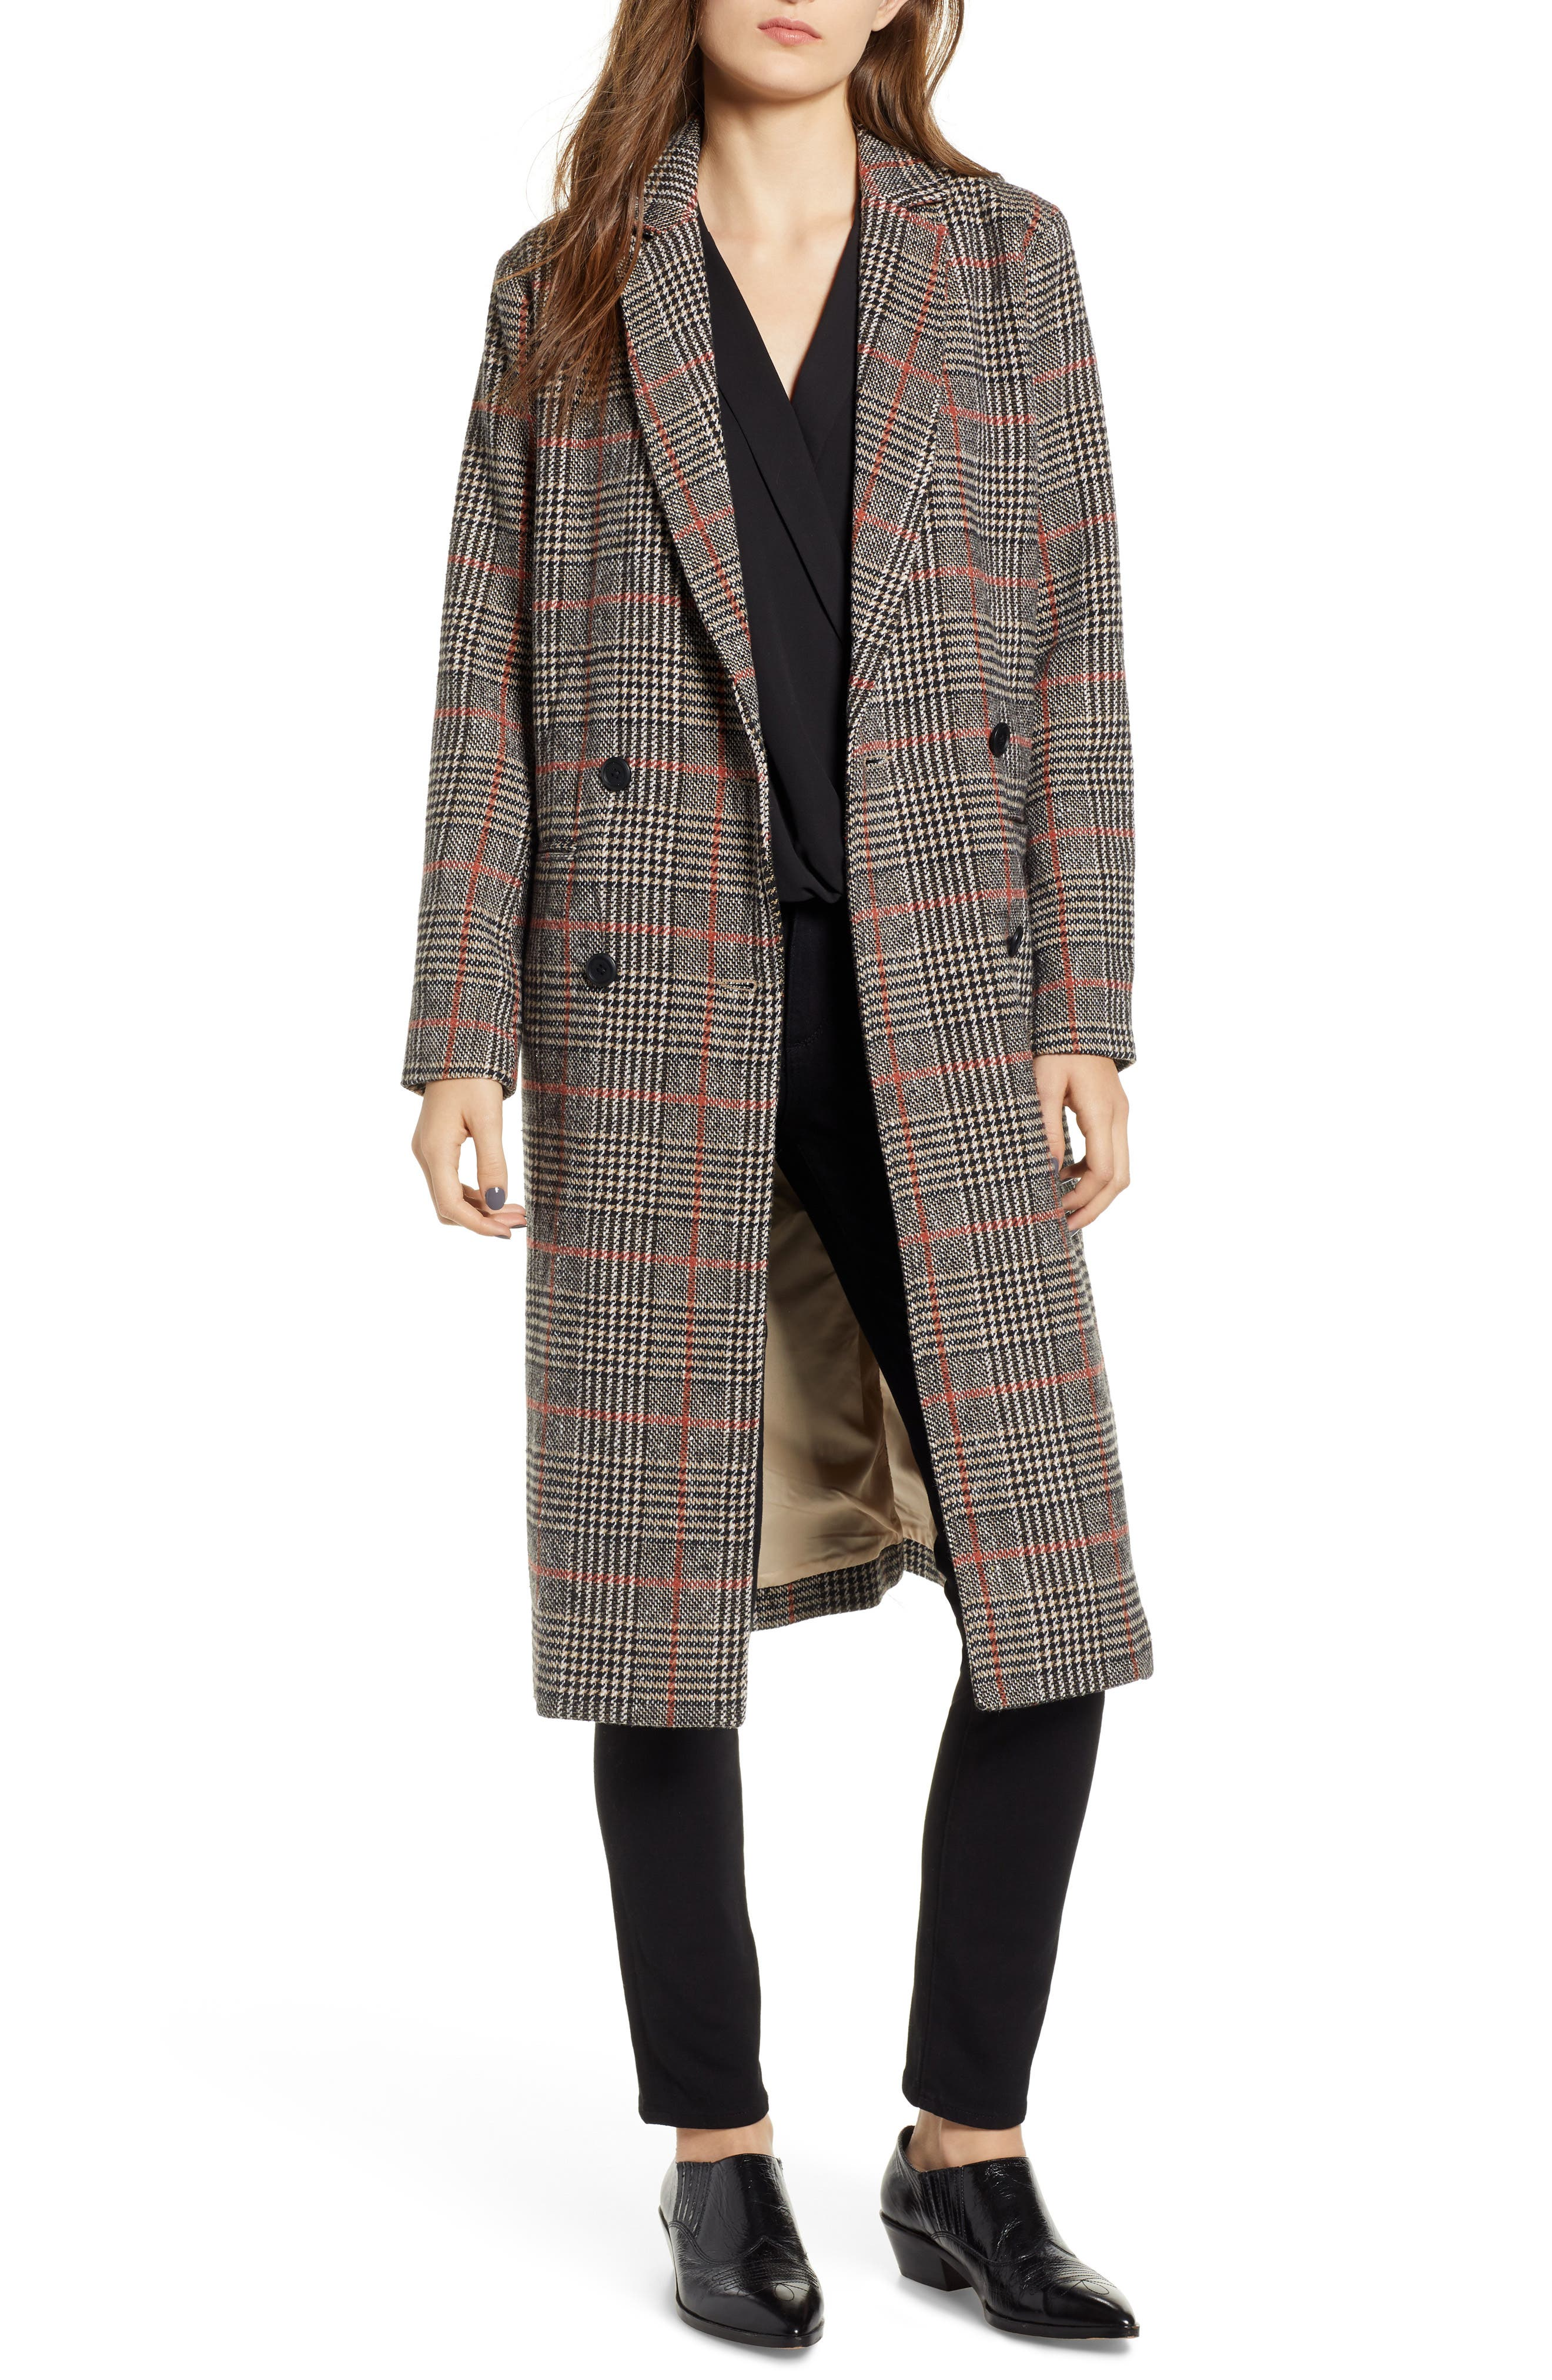 CUPCAKES AND CASHMERE,                             Plaid Duster Jacket,                             Main thumbnail 1, color,                             020